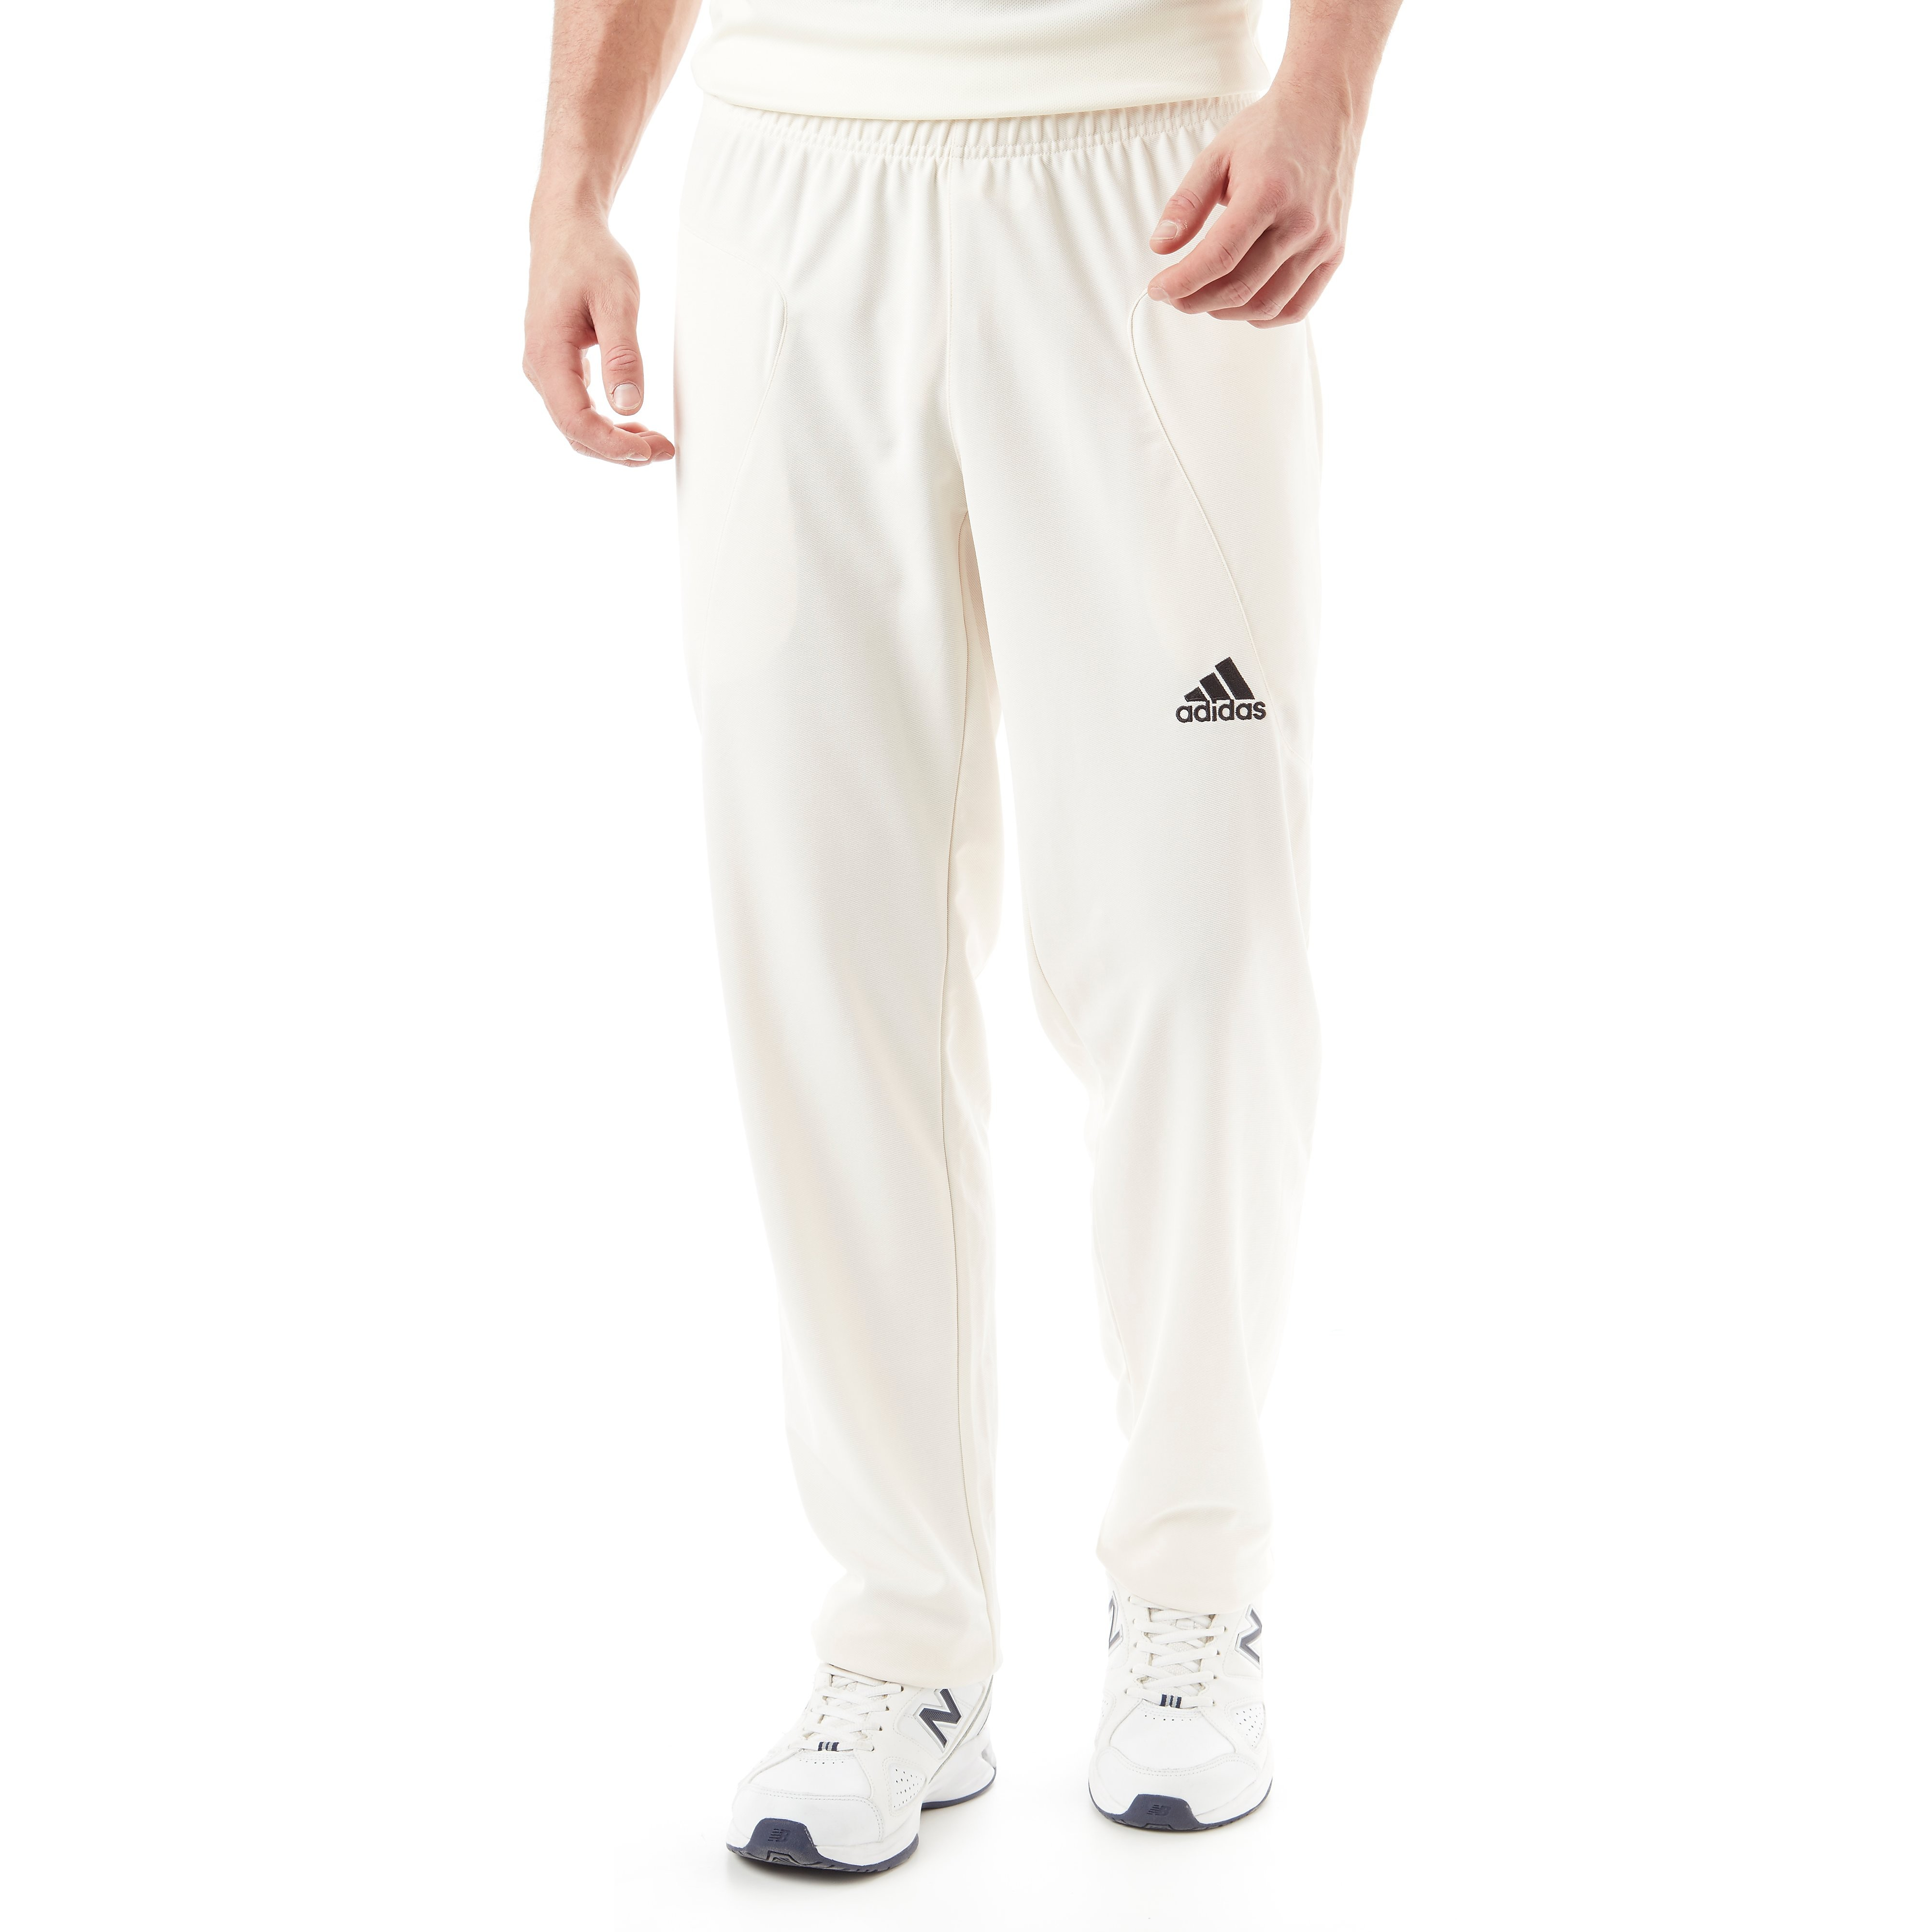 adidas Howzat Men's Cricket trousers